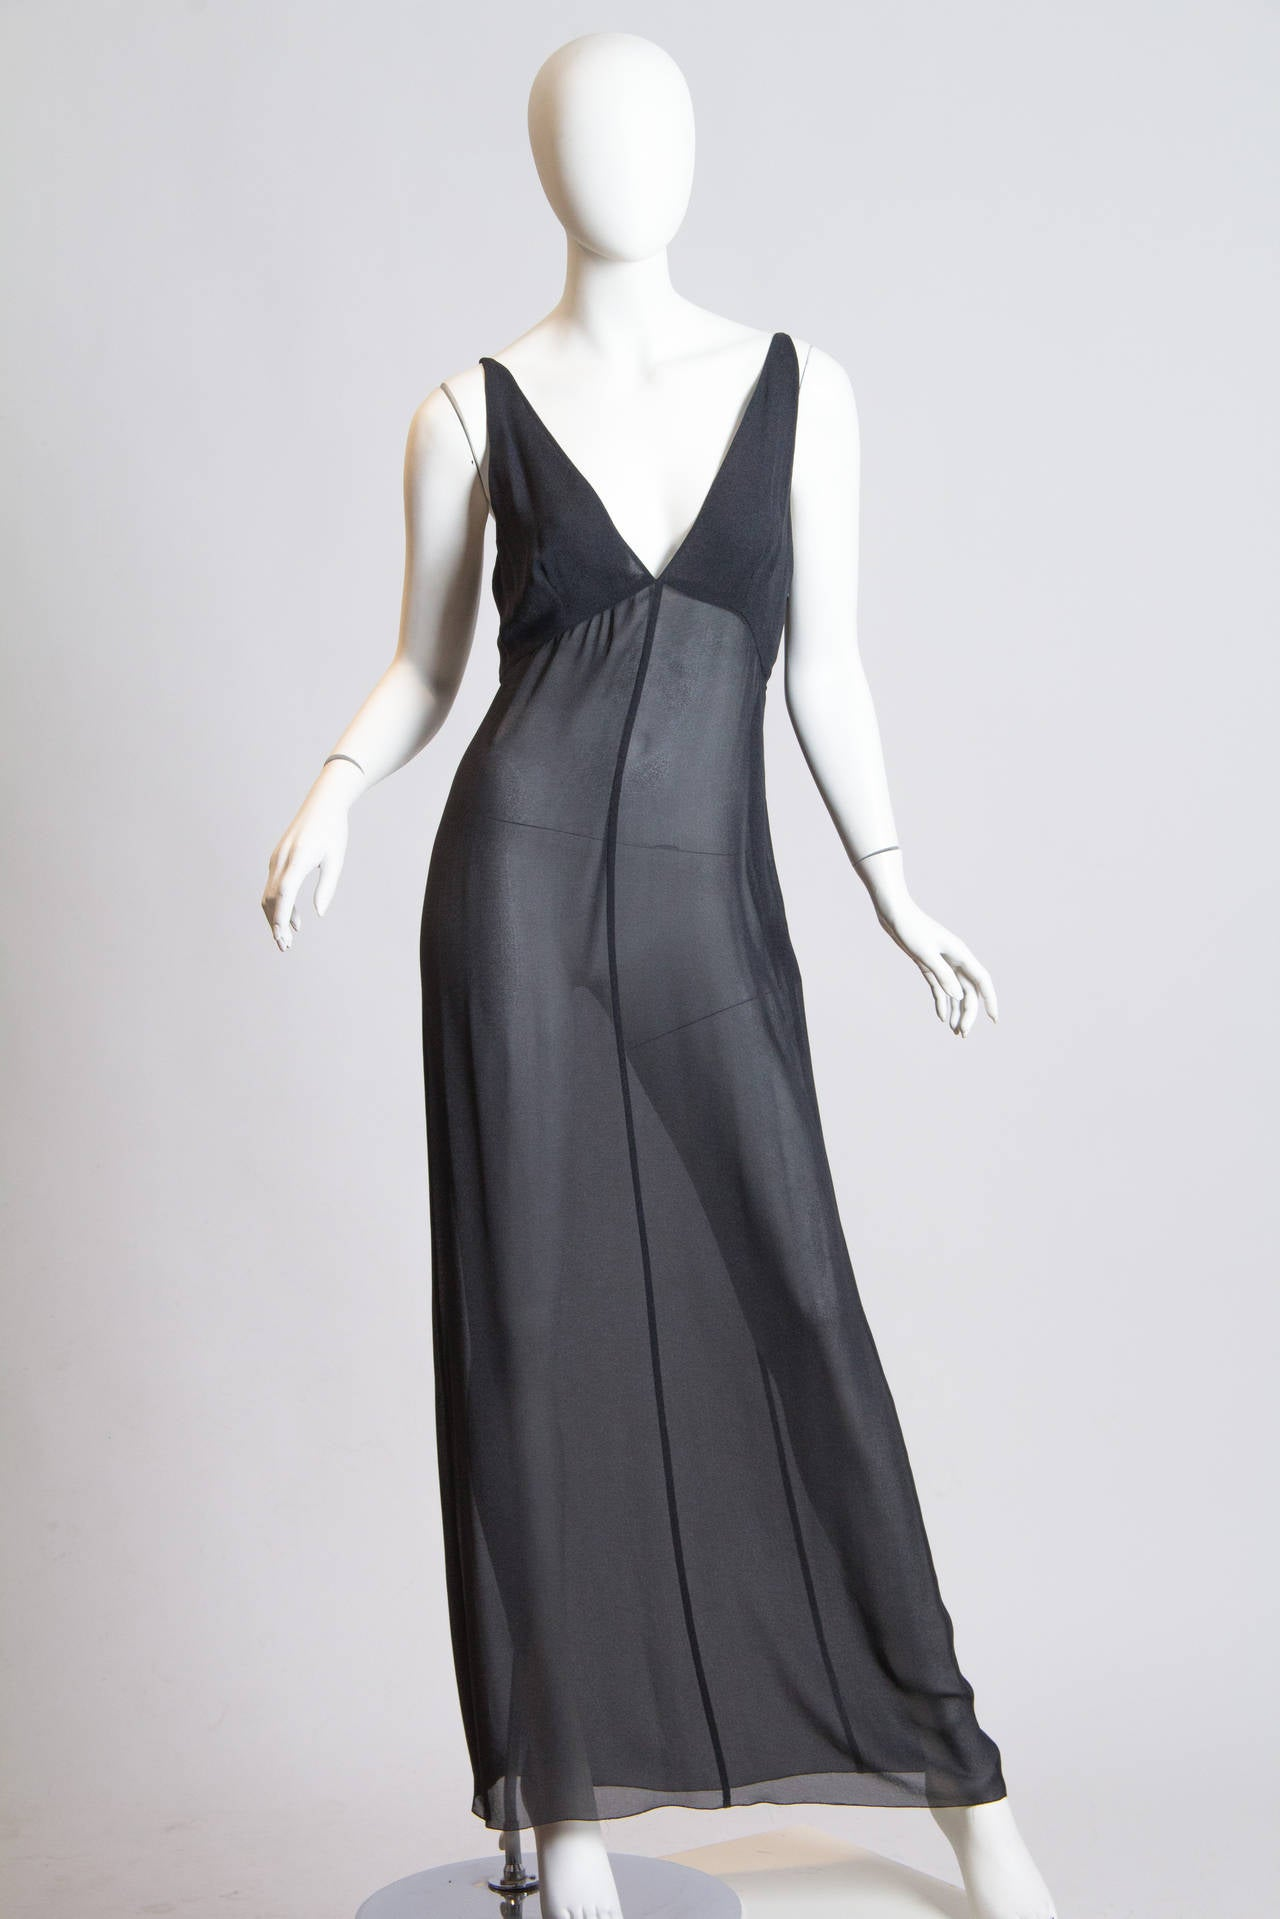 Slate Grey Crepe Dress from Chanel 4